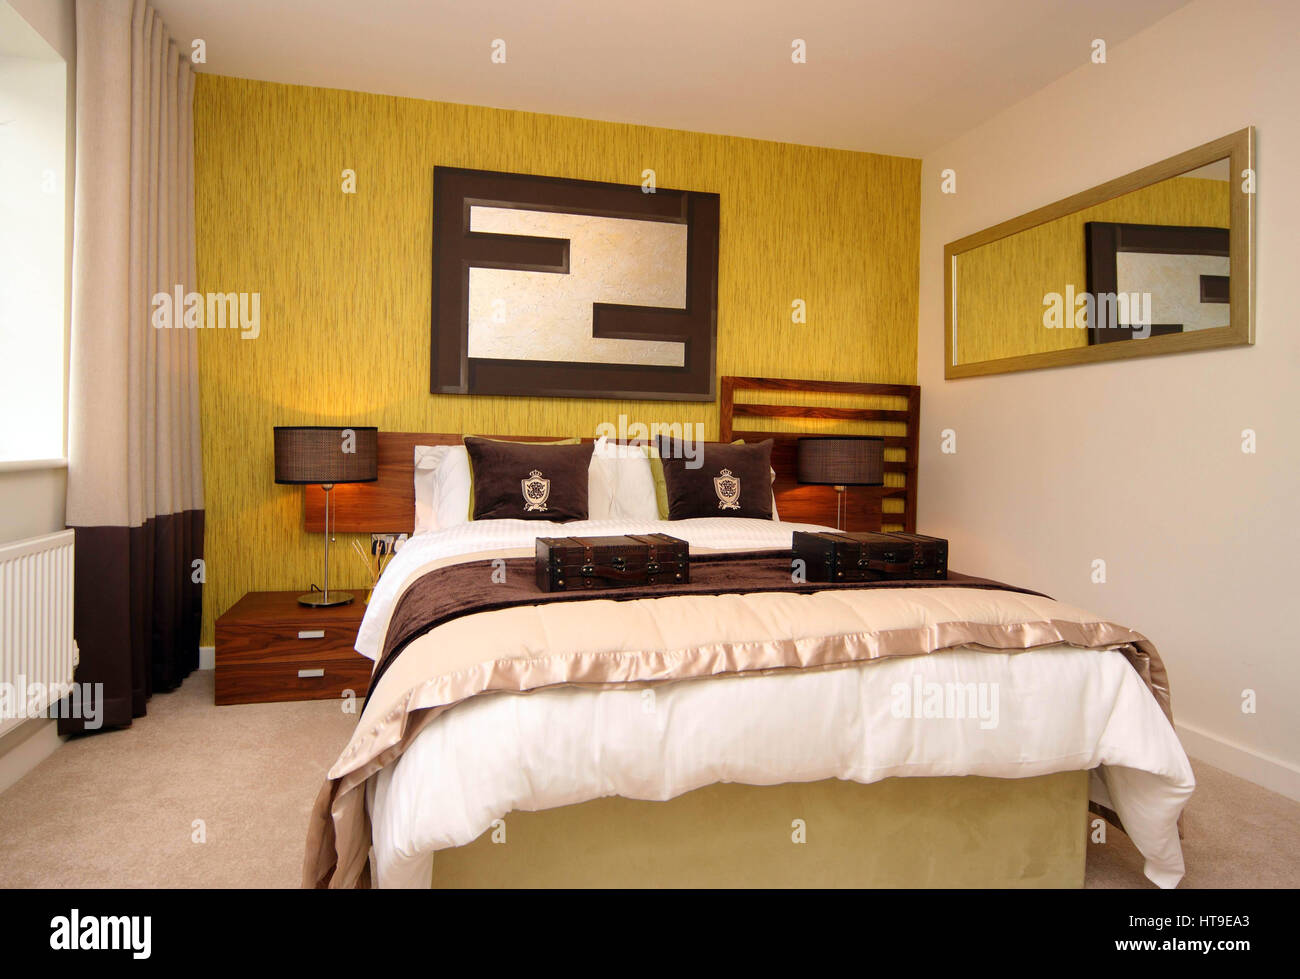 Home interior, bedroom, feature wall, green, yellow, mirror, bedside tables, lamps, cushions, - Stock Image